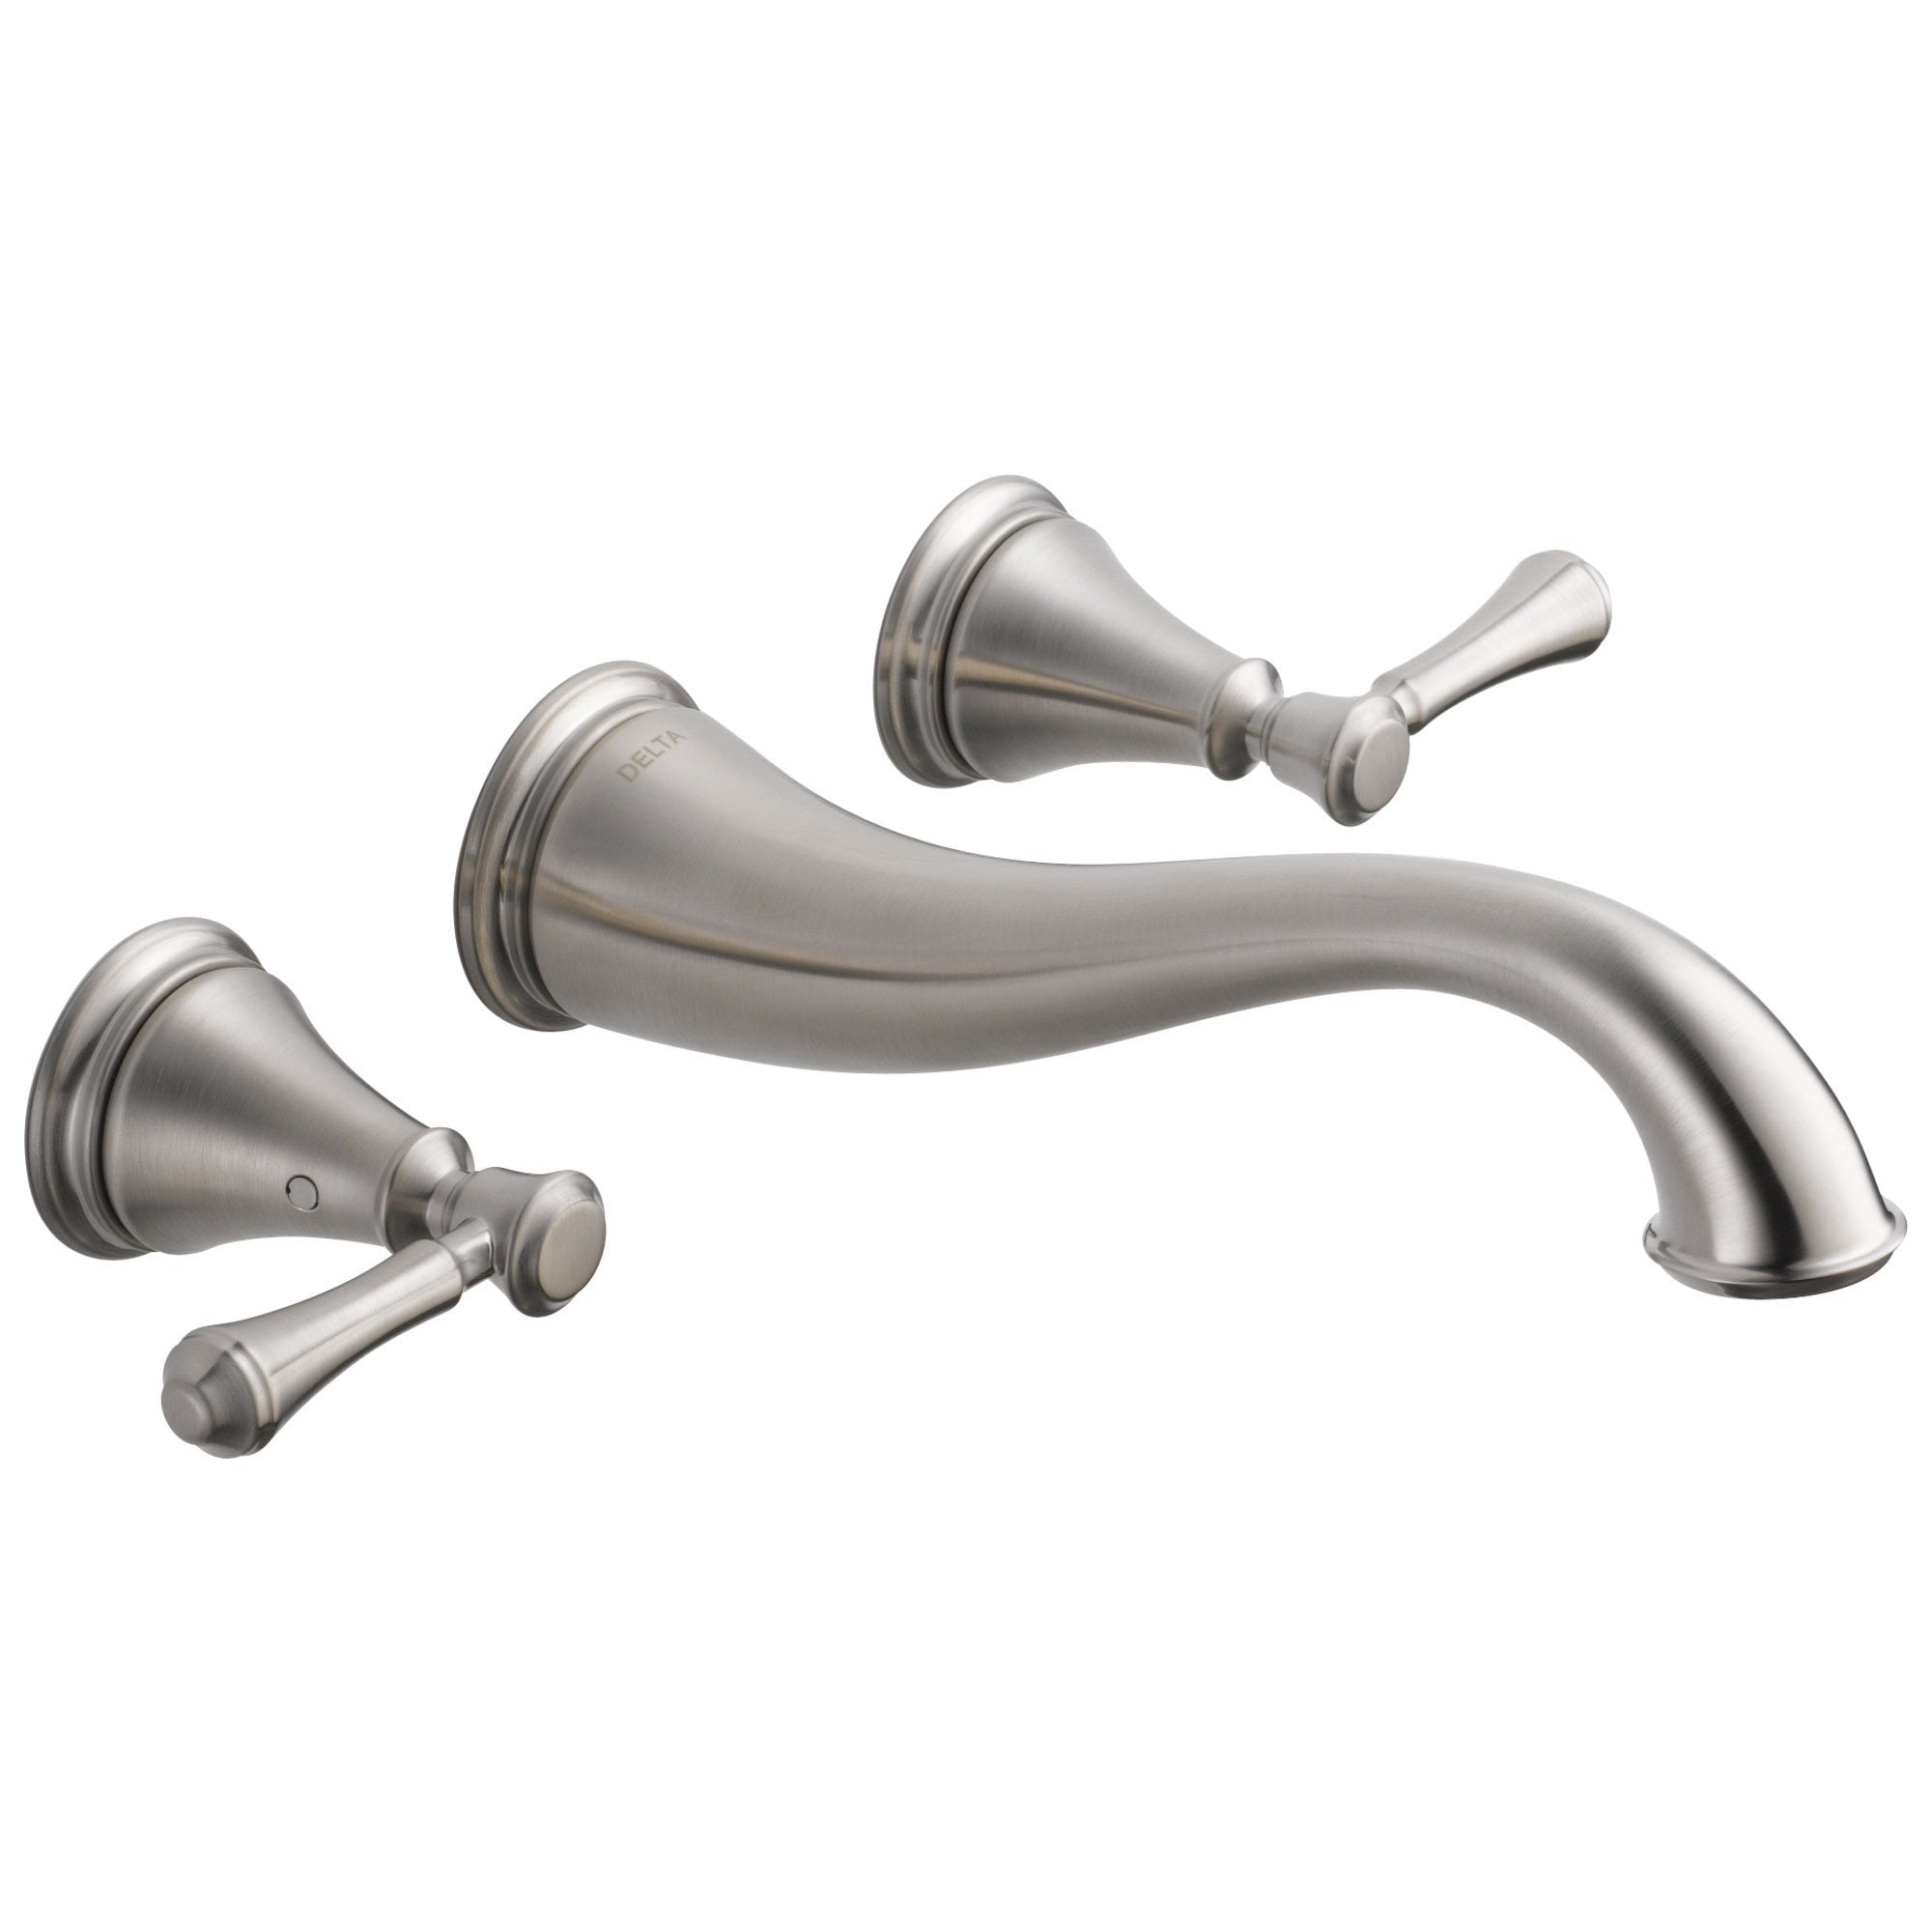 Delta Cassidy Collection Stainless Steel Finish Traditional Style Two Handle Wall Mount Bathroom Sink Faucet Trim Kit (Requires Valve) DT3597LFSSWL